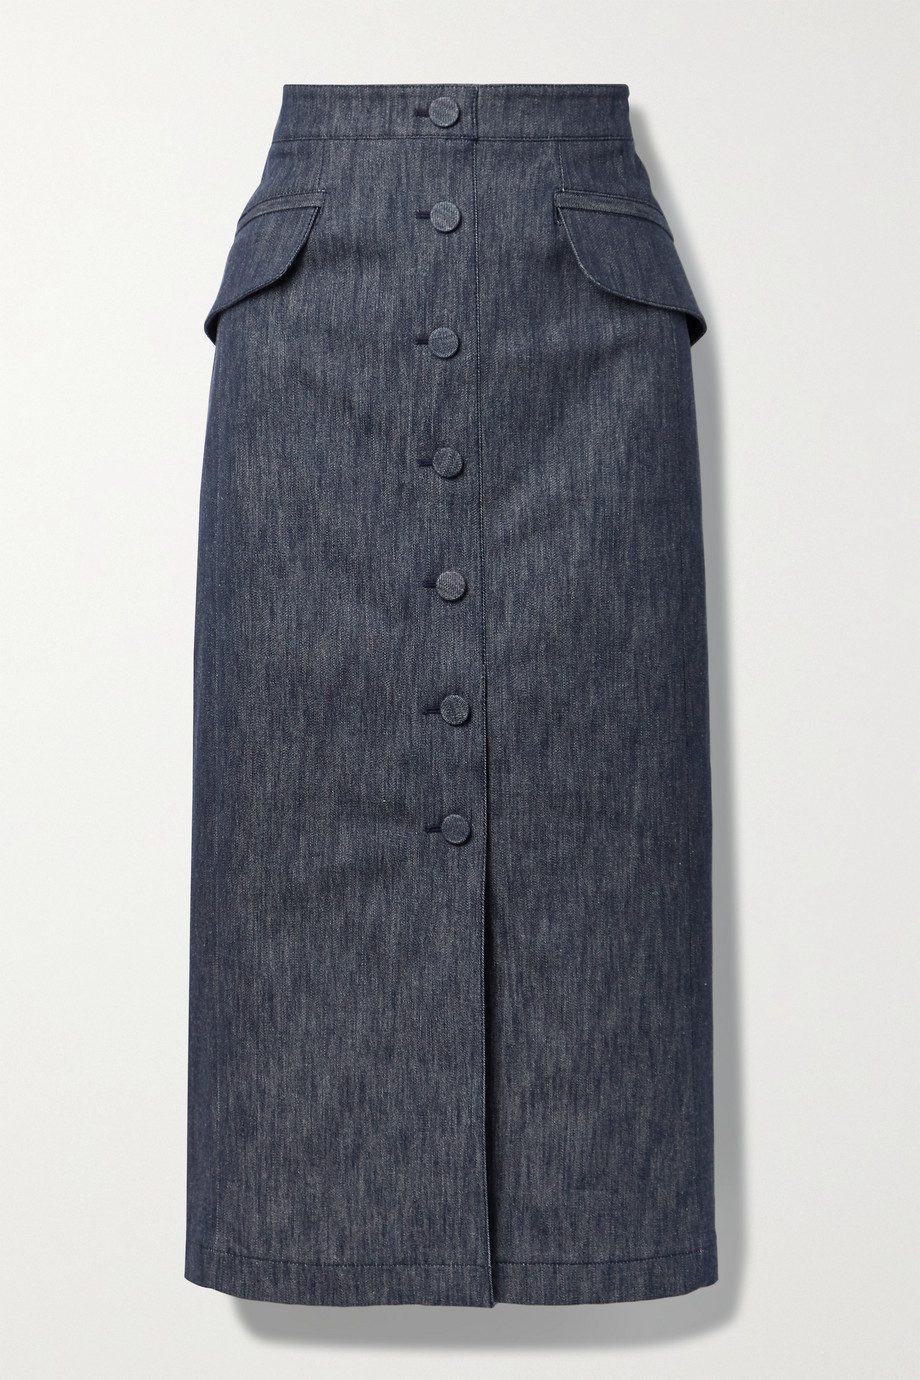 Carolina Herrera Stretch-denim midi skirt